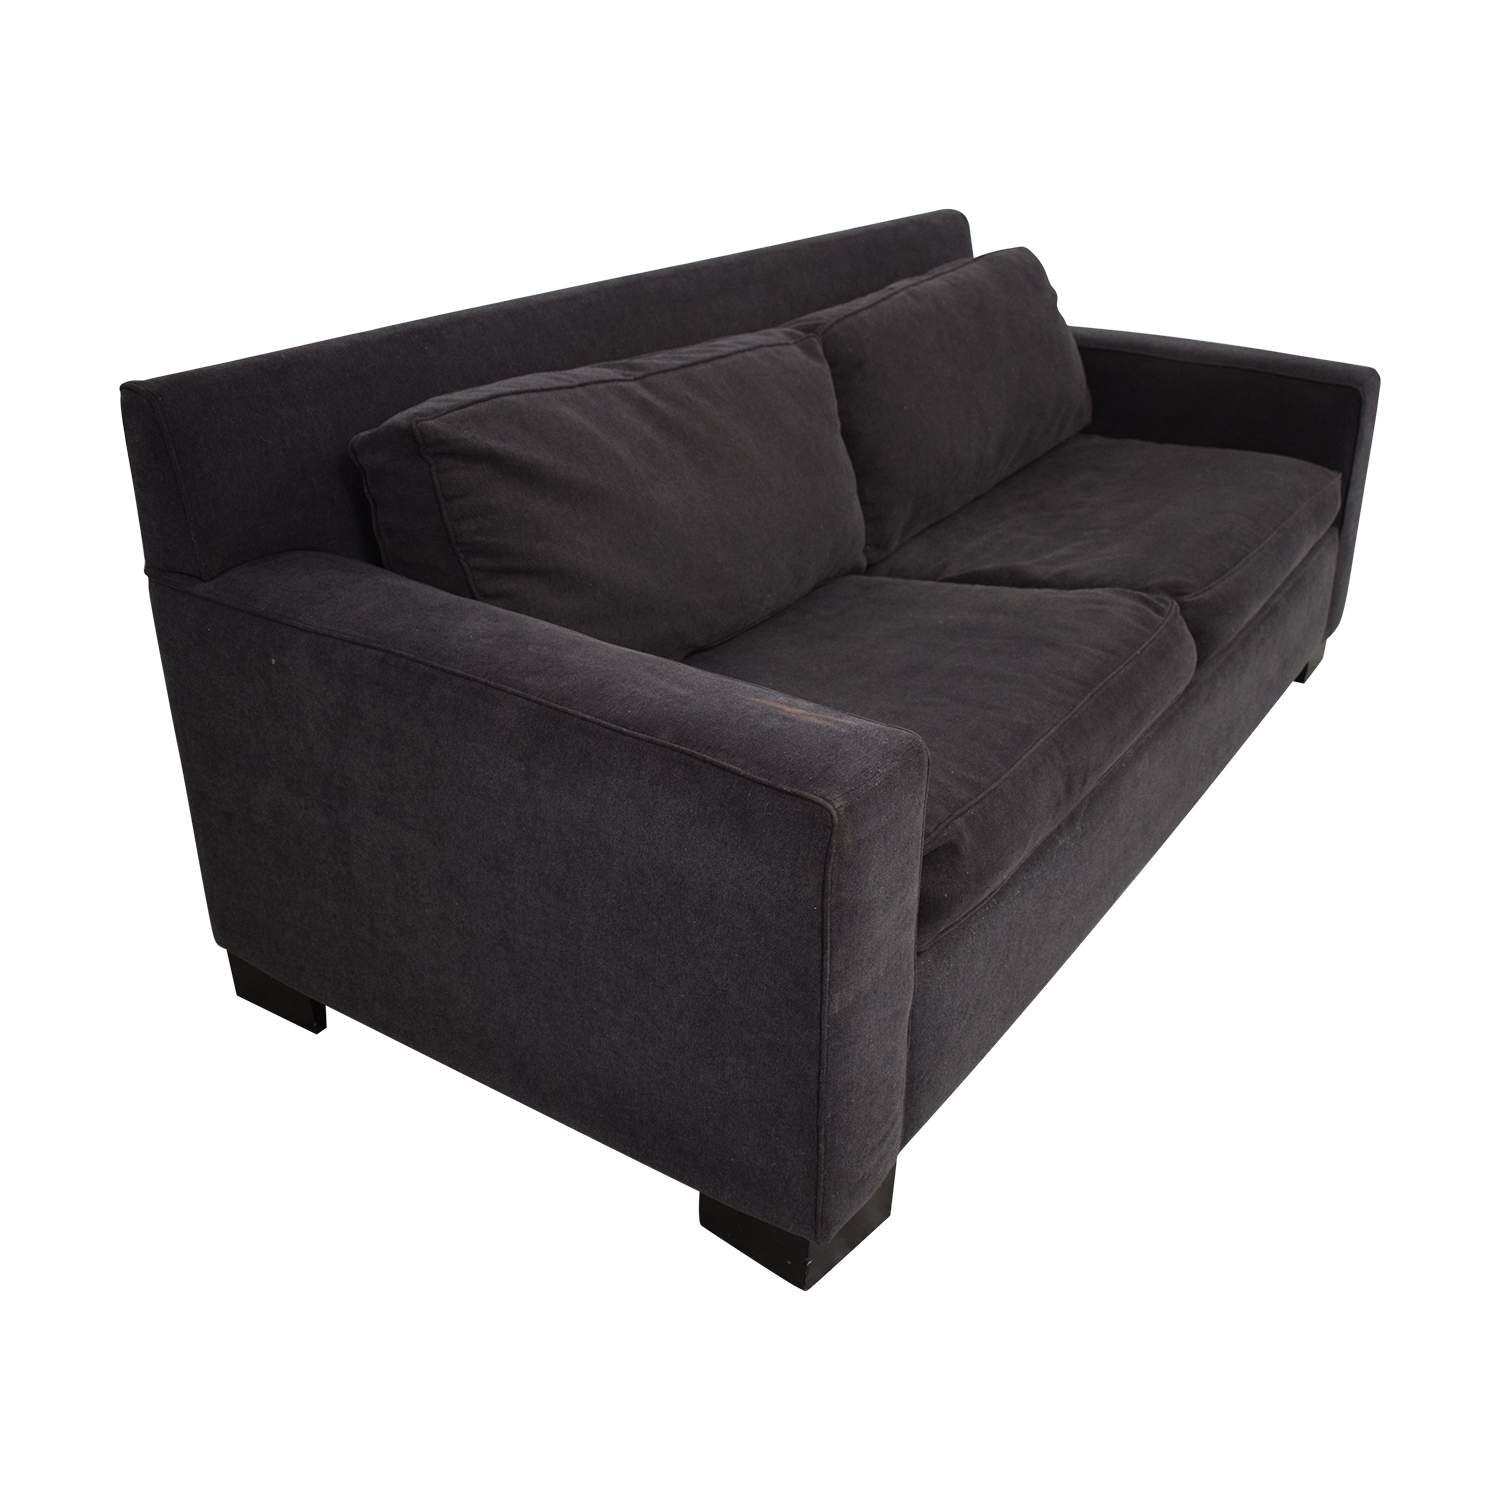 West Elm West Elm Henry Sleeper Sofa coupon